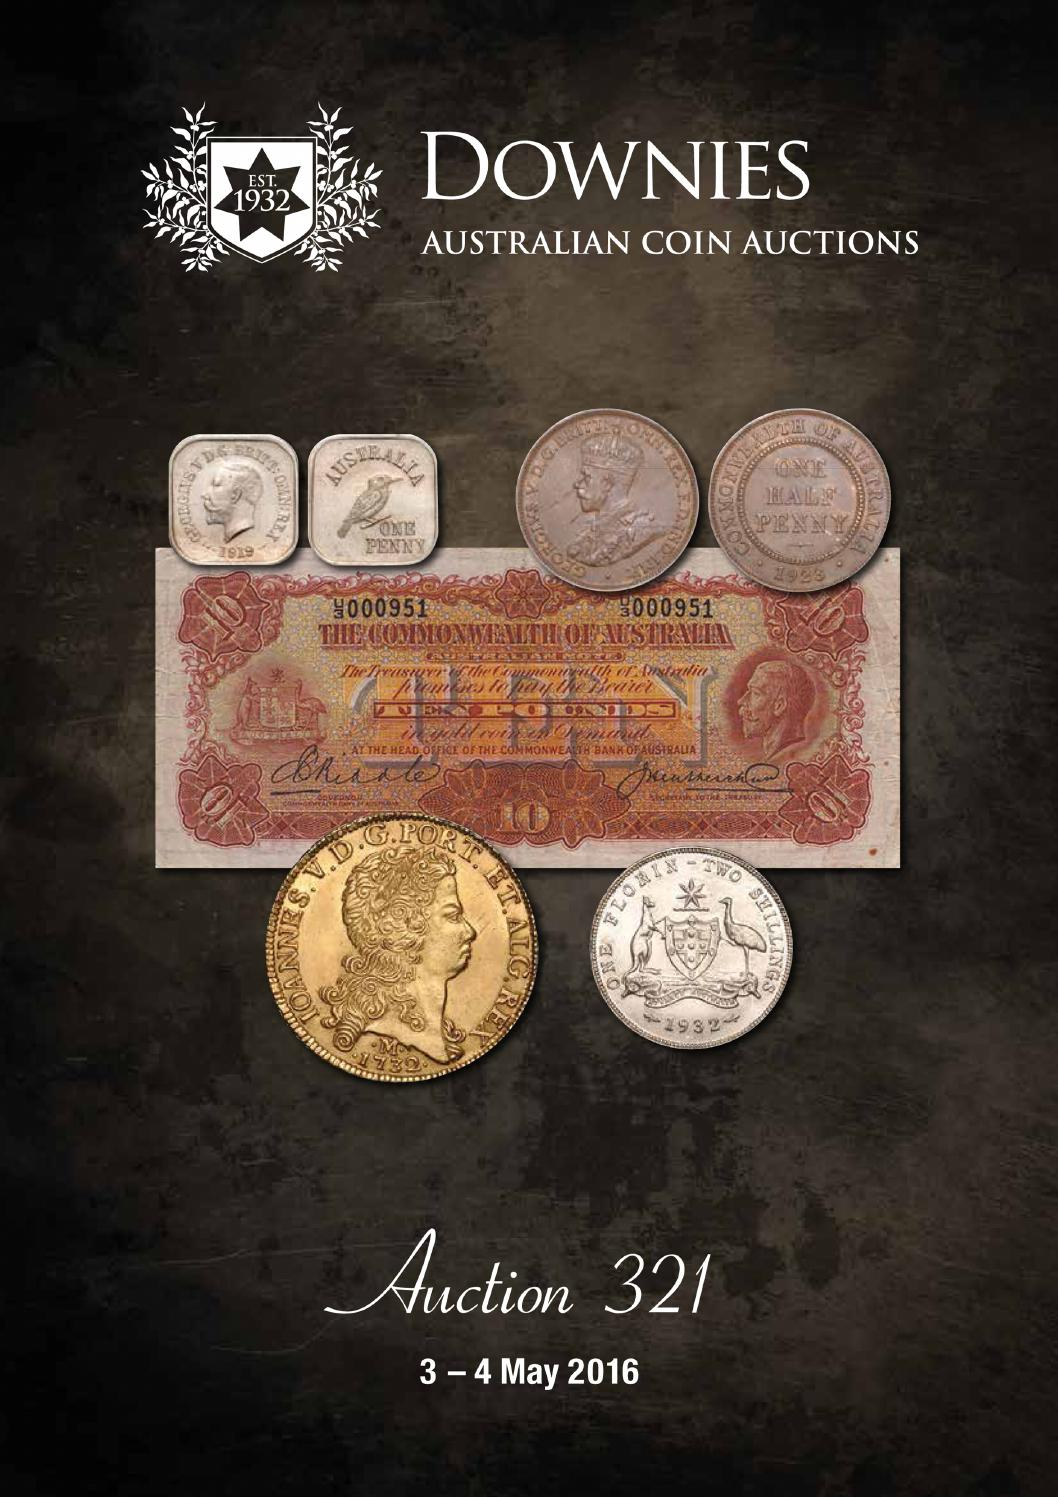 Australian Coin Auctions Sale 321 Catalogue By Downies Issuu